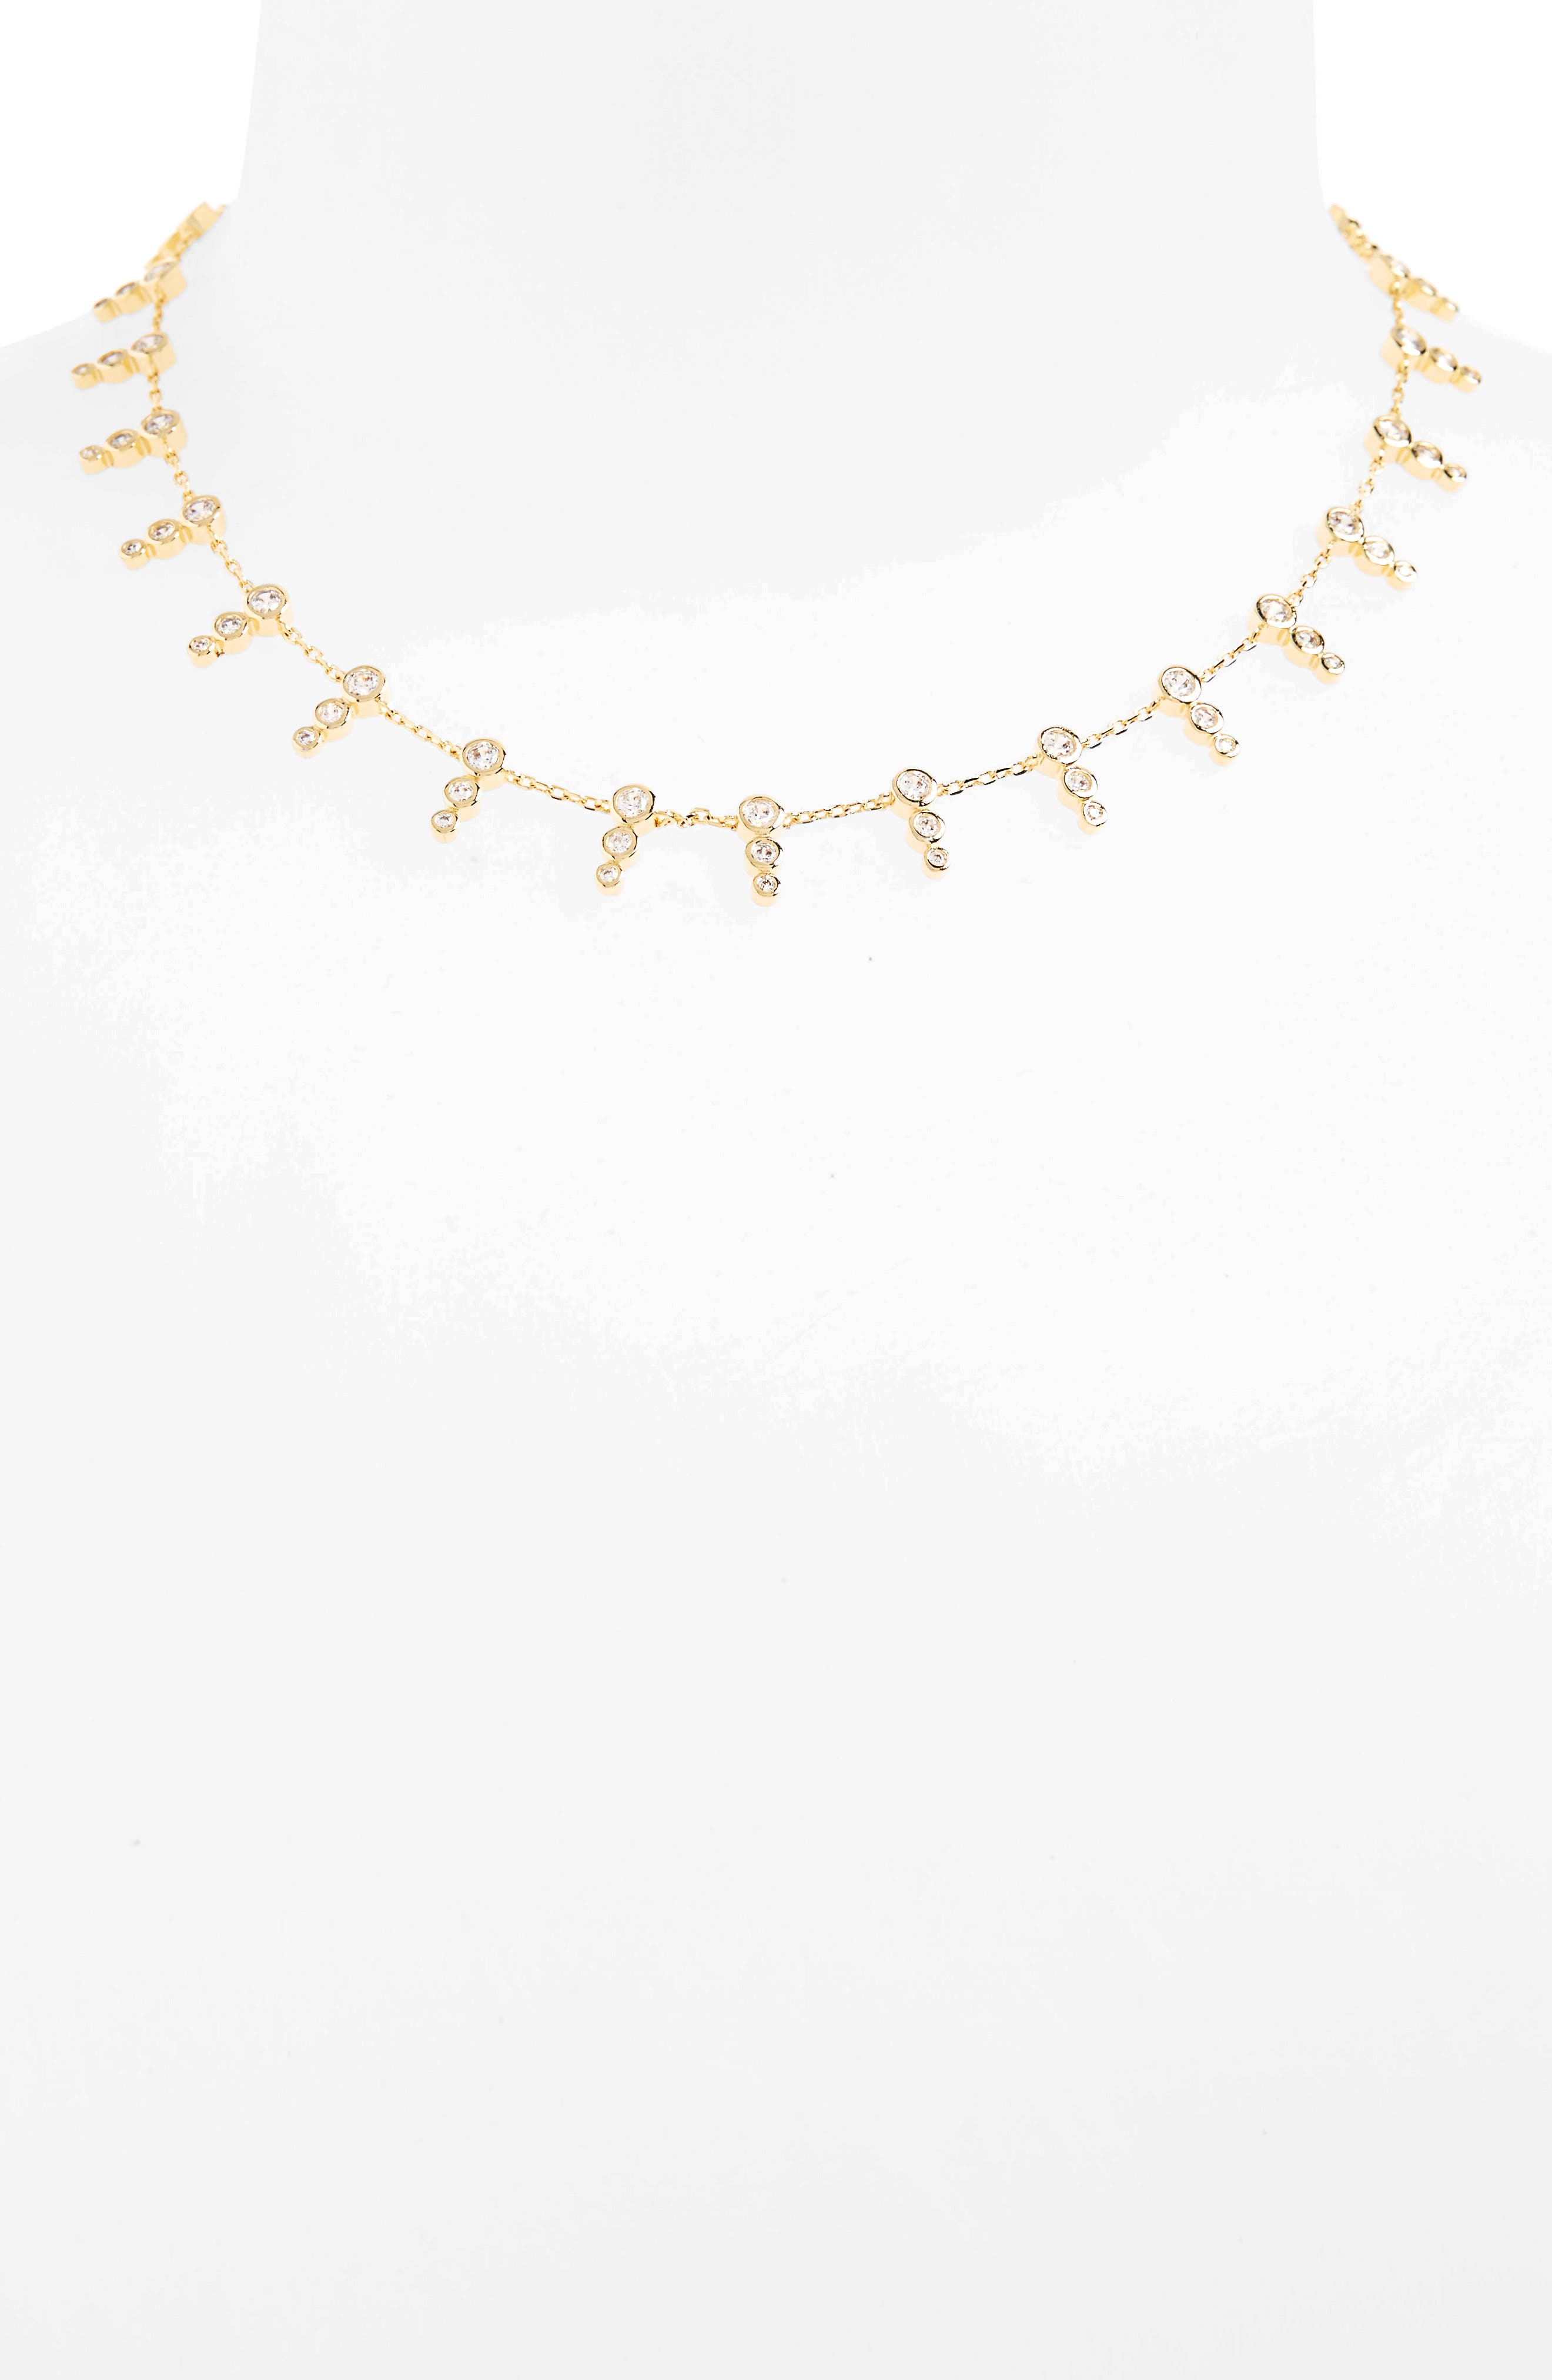 McPhee Cubic Zirconia Collar Necklace,                         Main,                         color, Gold